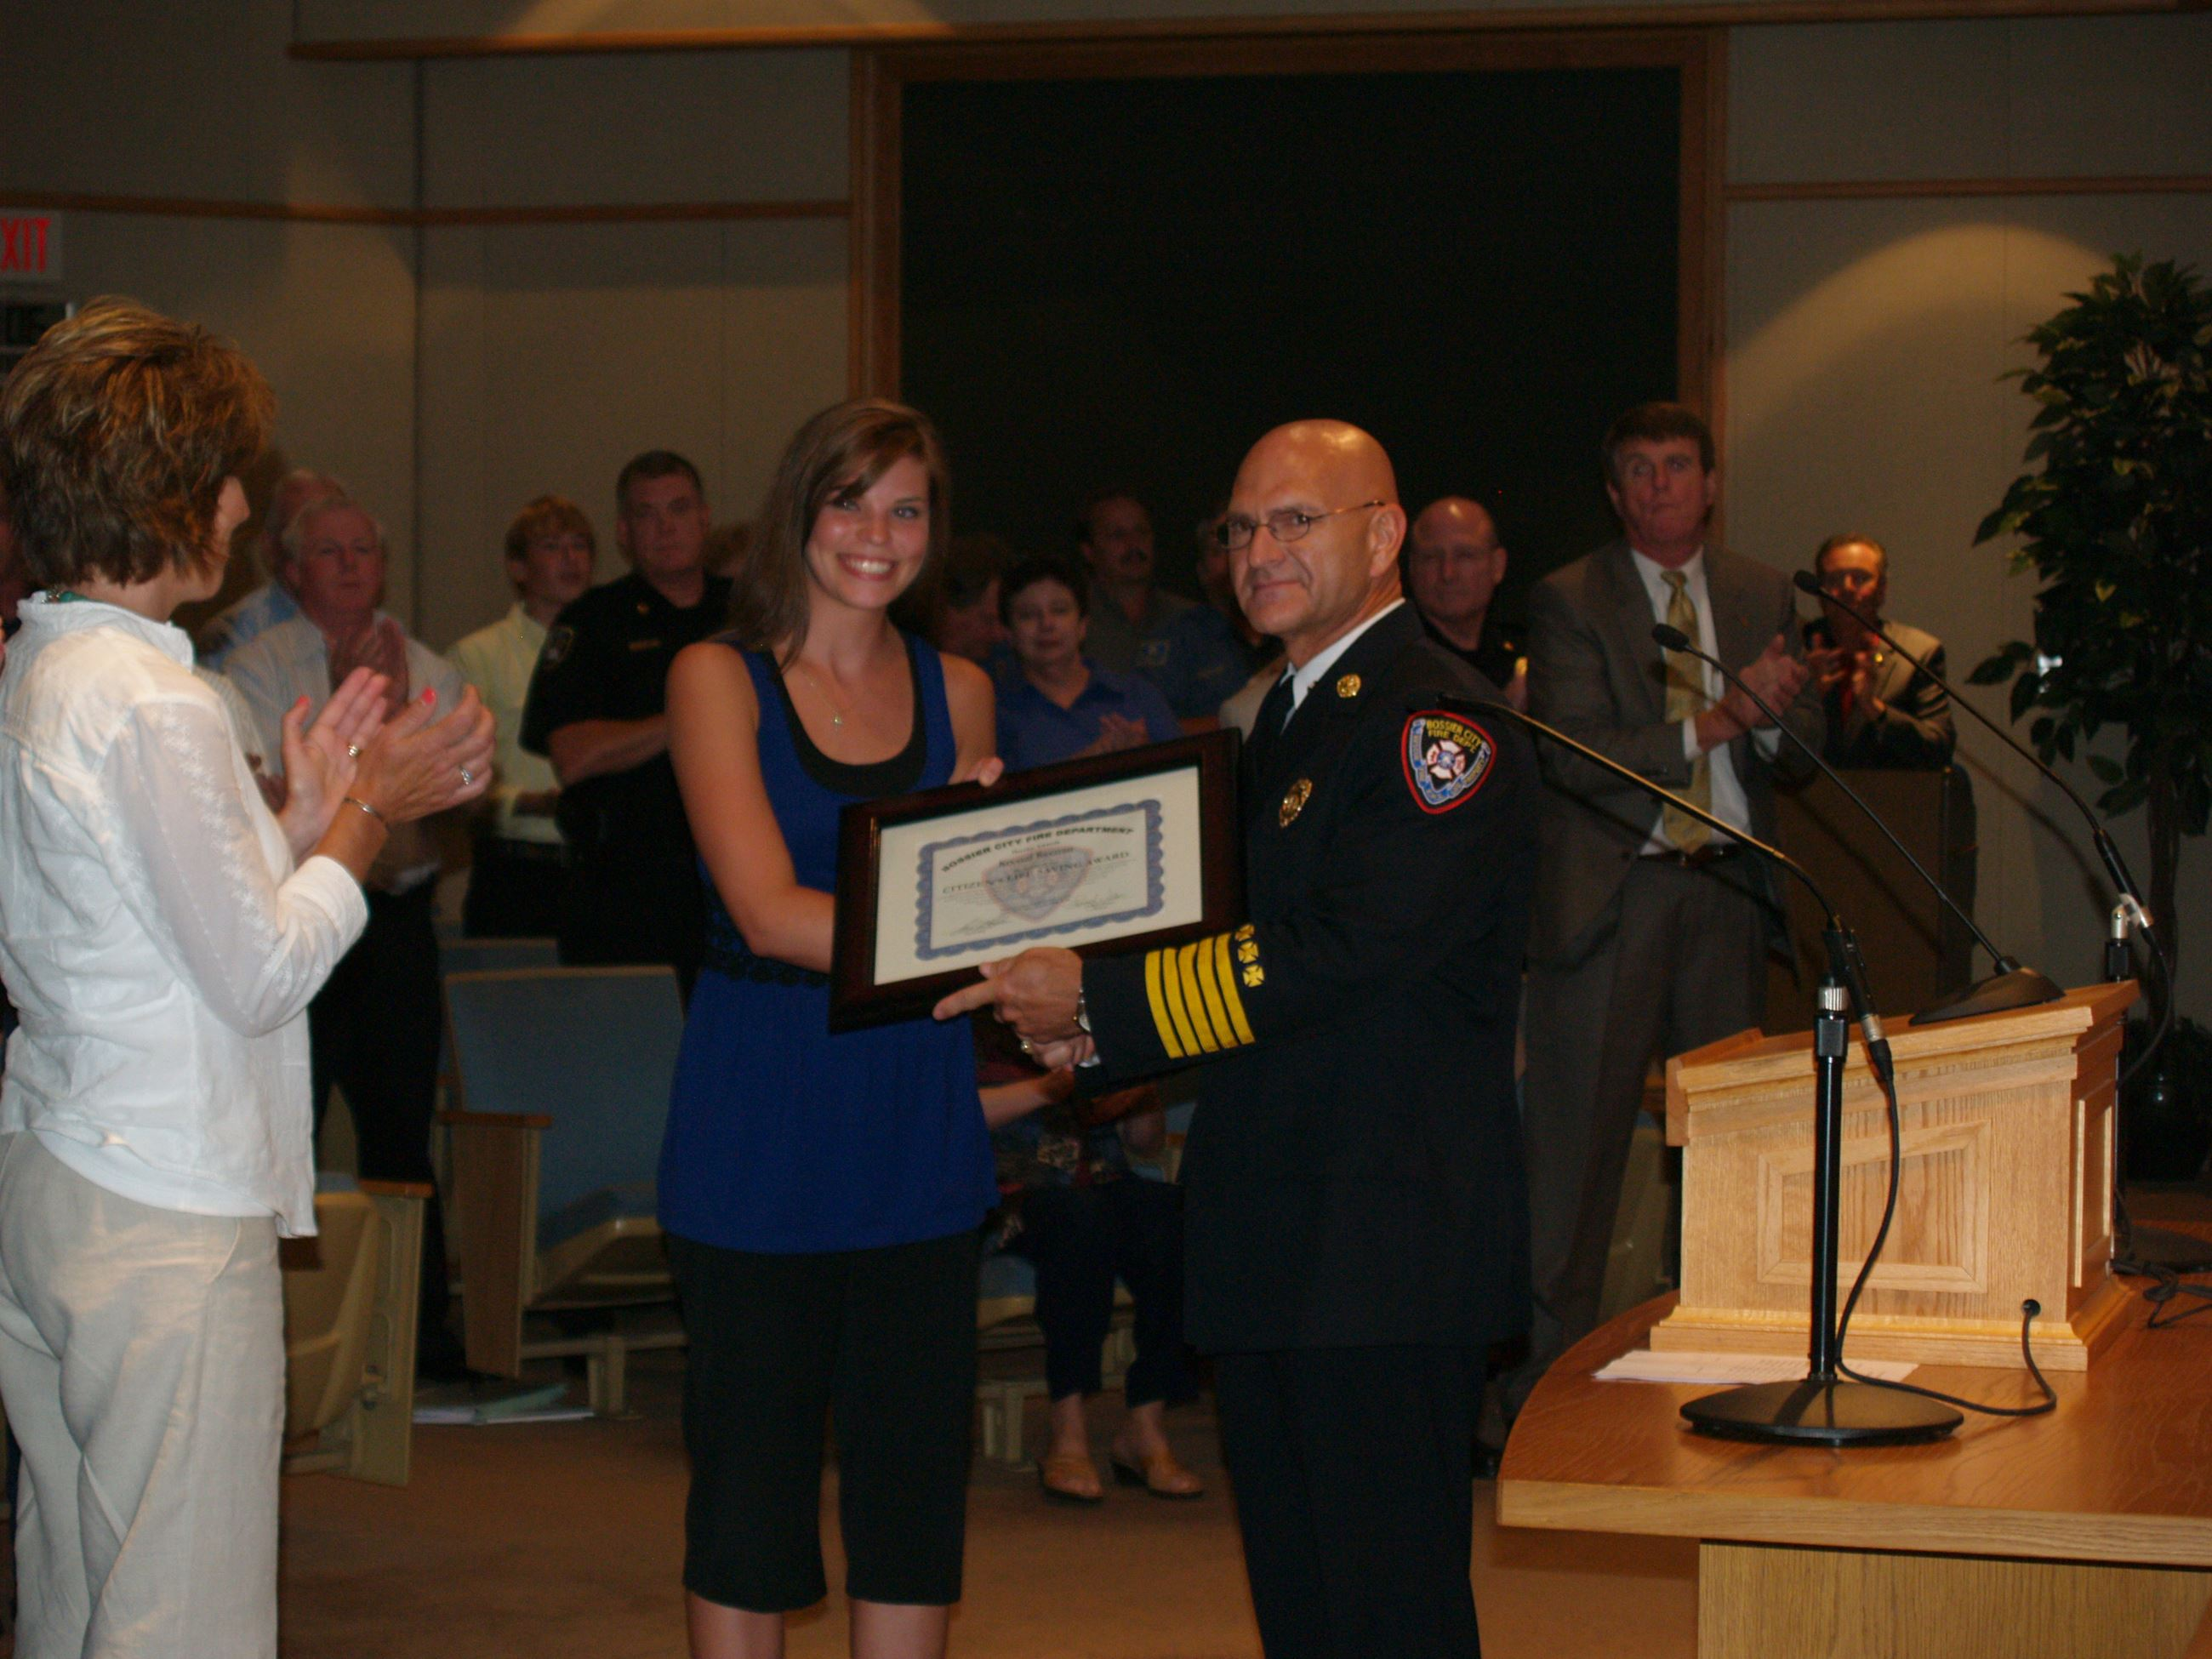 2008 Citizen's Recognition Award Recipient Accepting Award